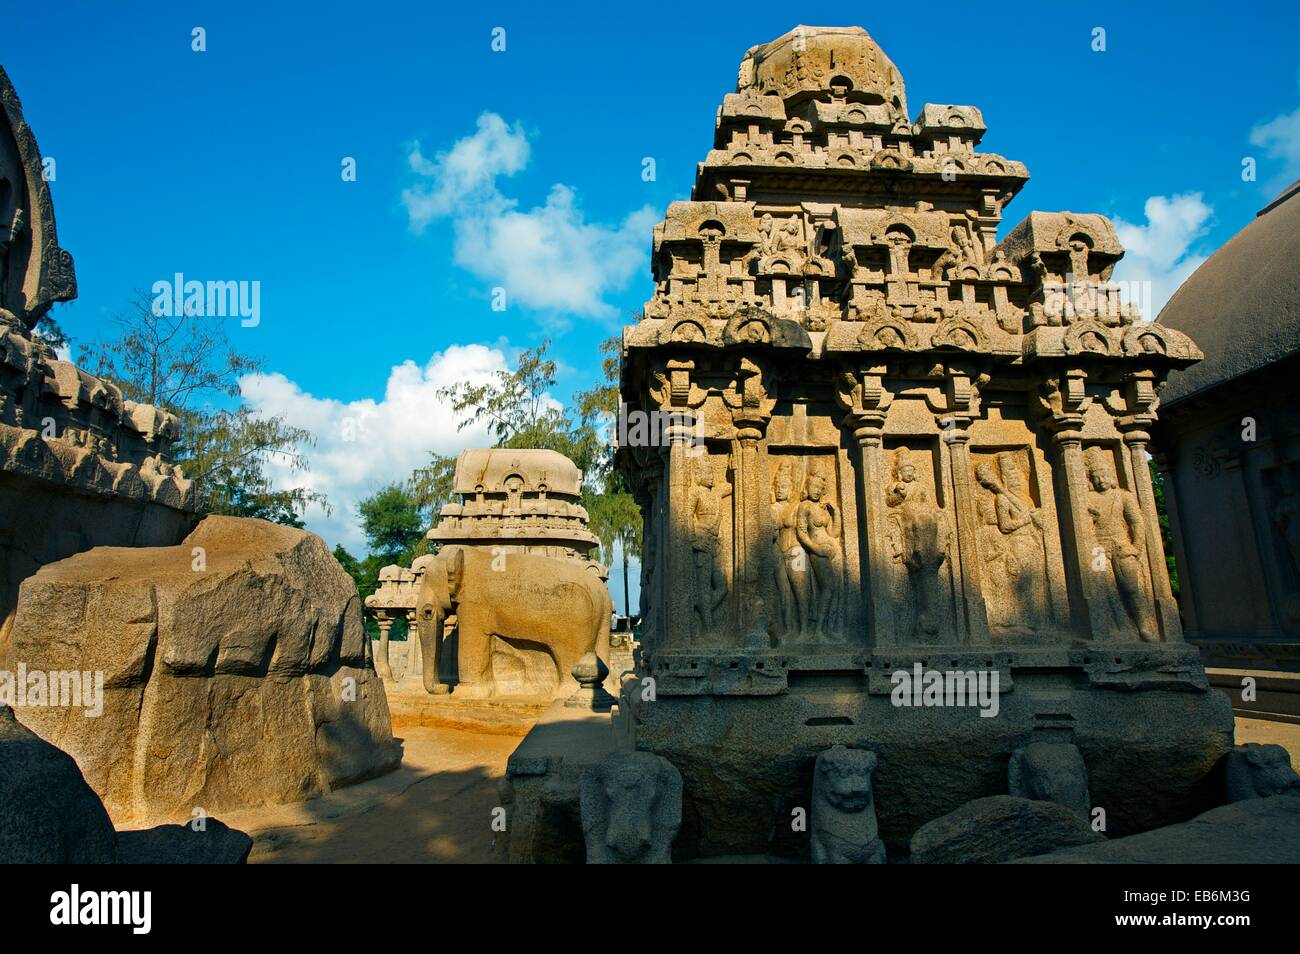 Richly carved monolithic Ratha, the Five Rathas  Mamallapuram  Tamilnadu, India. - Stock Image